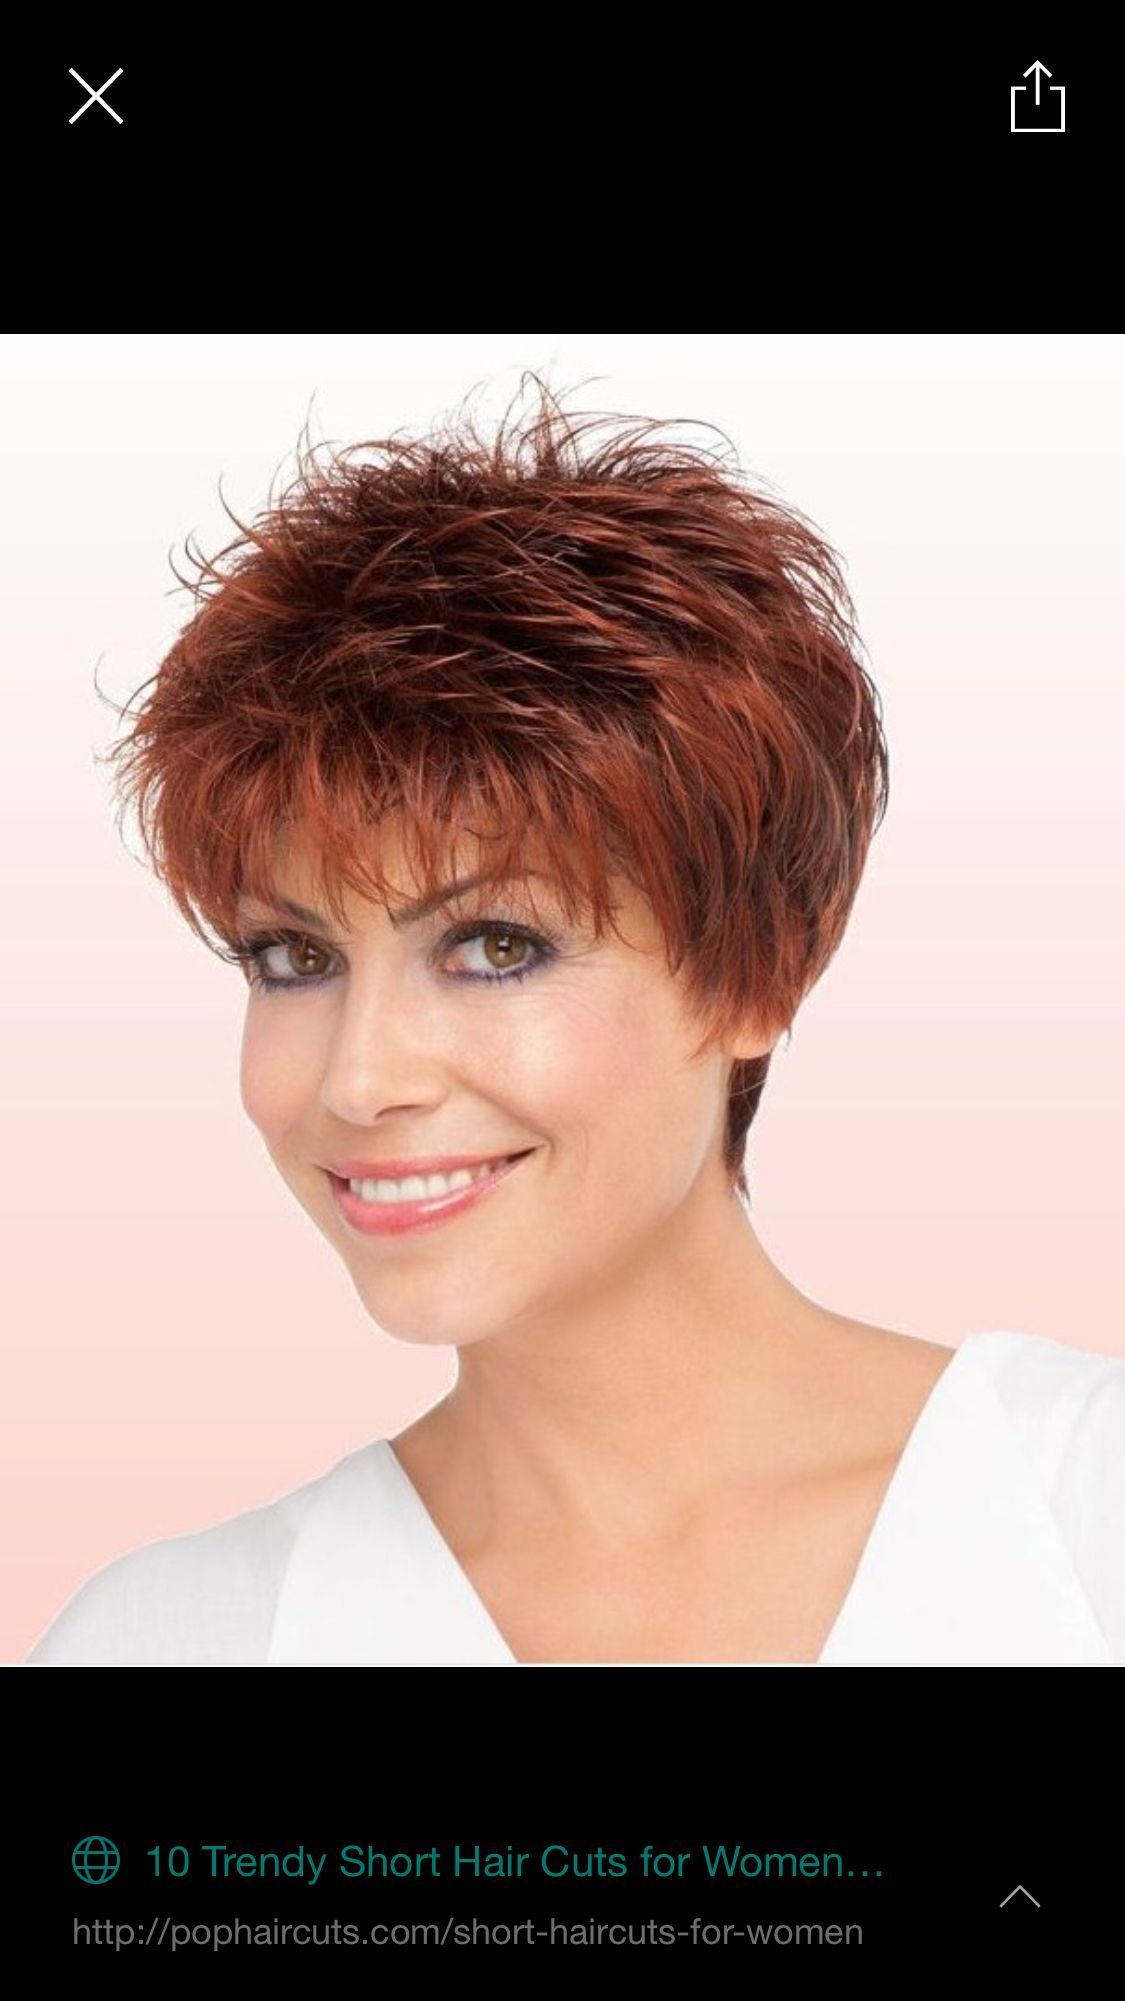 Pin By Angee Owens On Cute Hair Cuts Short Hair Cuts For